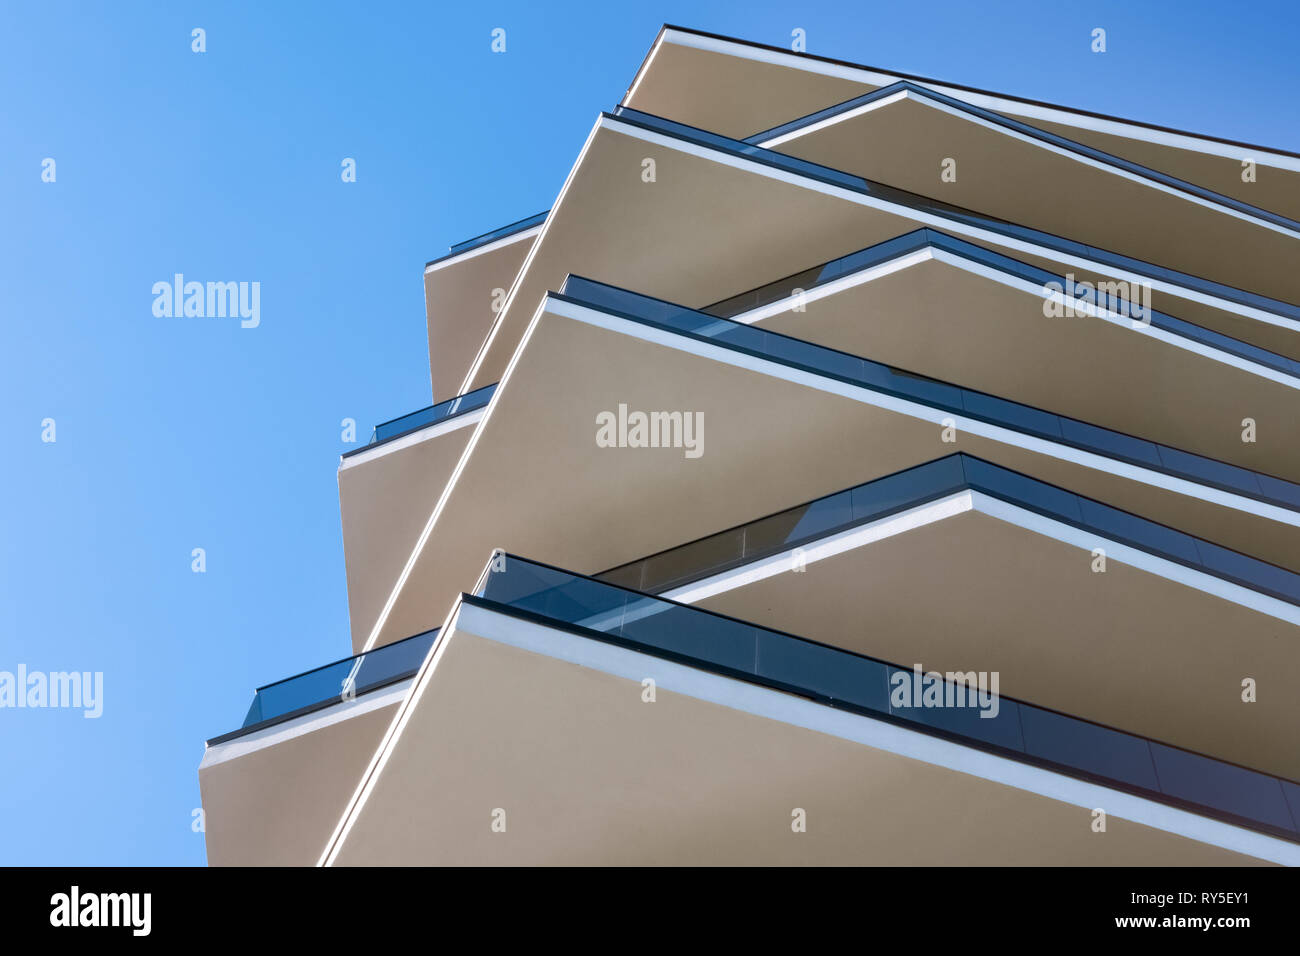 Modern building. Modern office building with facade of glass. Modern highrise skyscraper steel and glass architecture. Office building exterior. Stock Photo